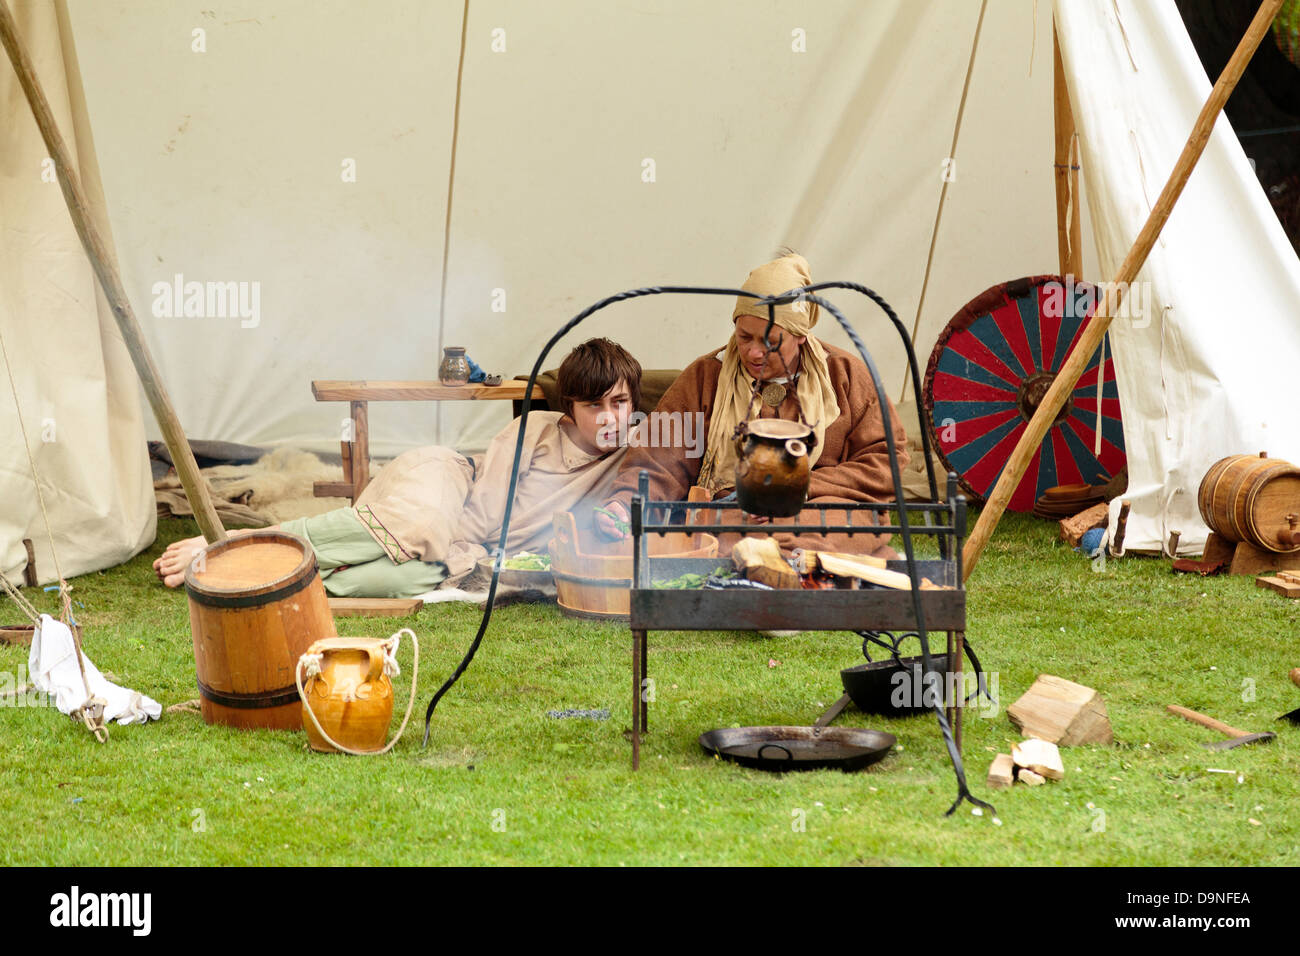 Reenactment of life in a Viking village, people cooking food, Peterborough Heritage Festival 22 June 2013, England - Stock Image